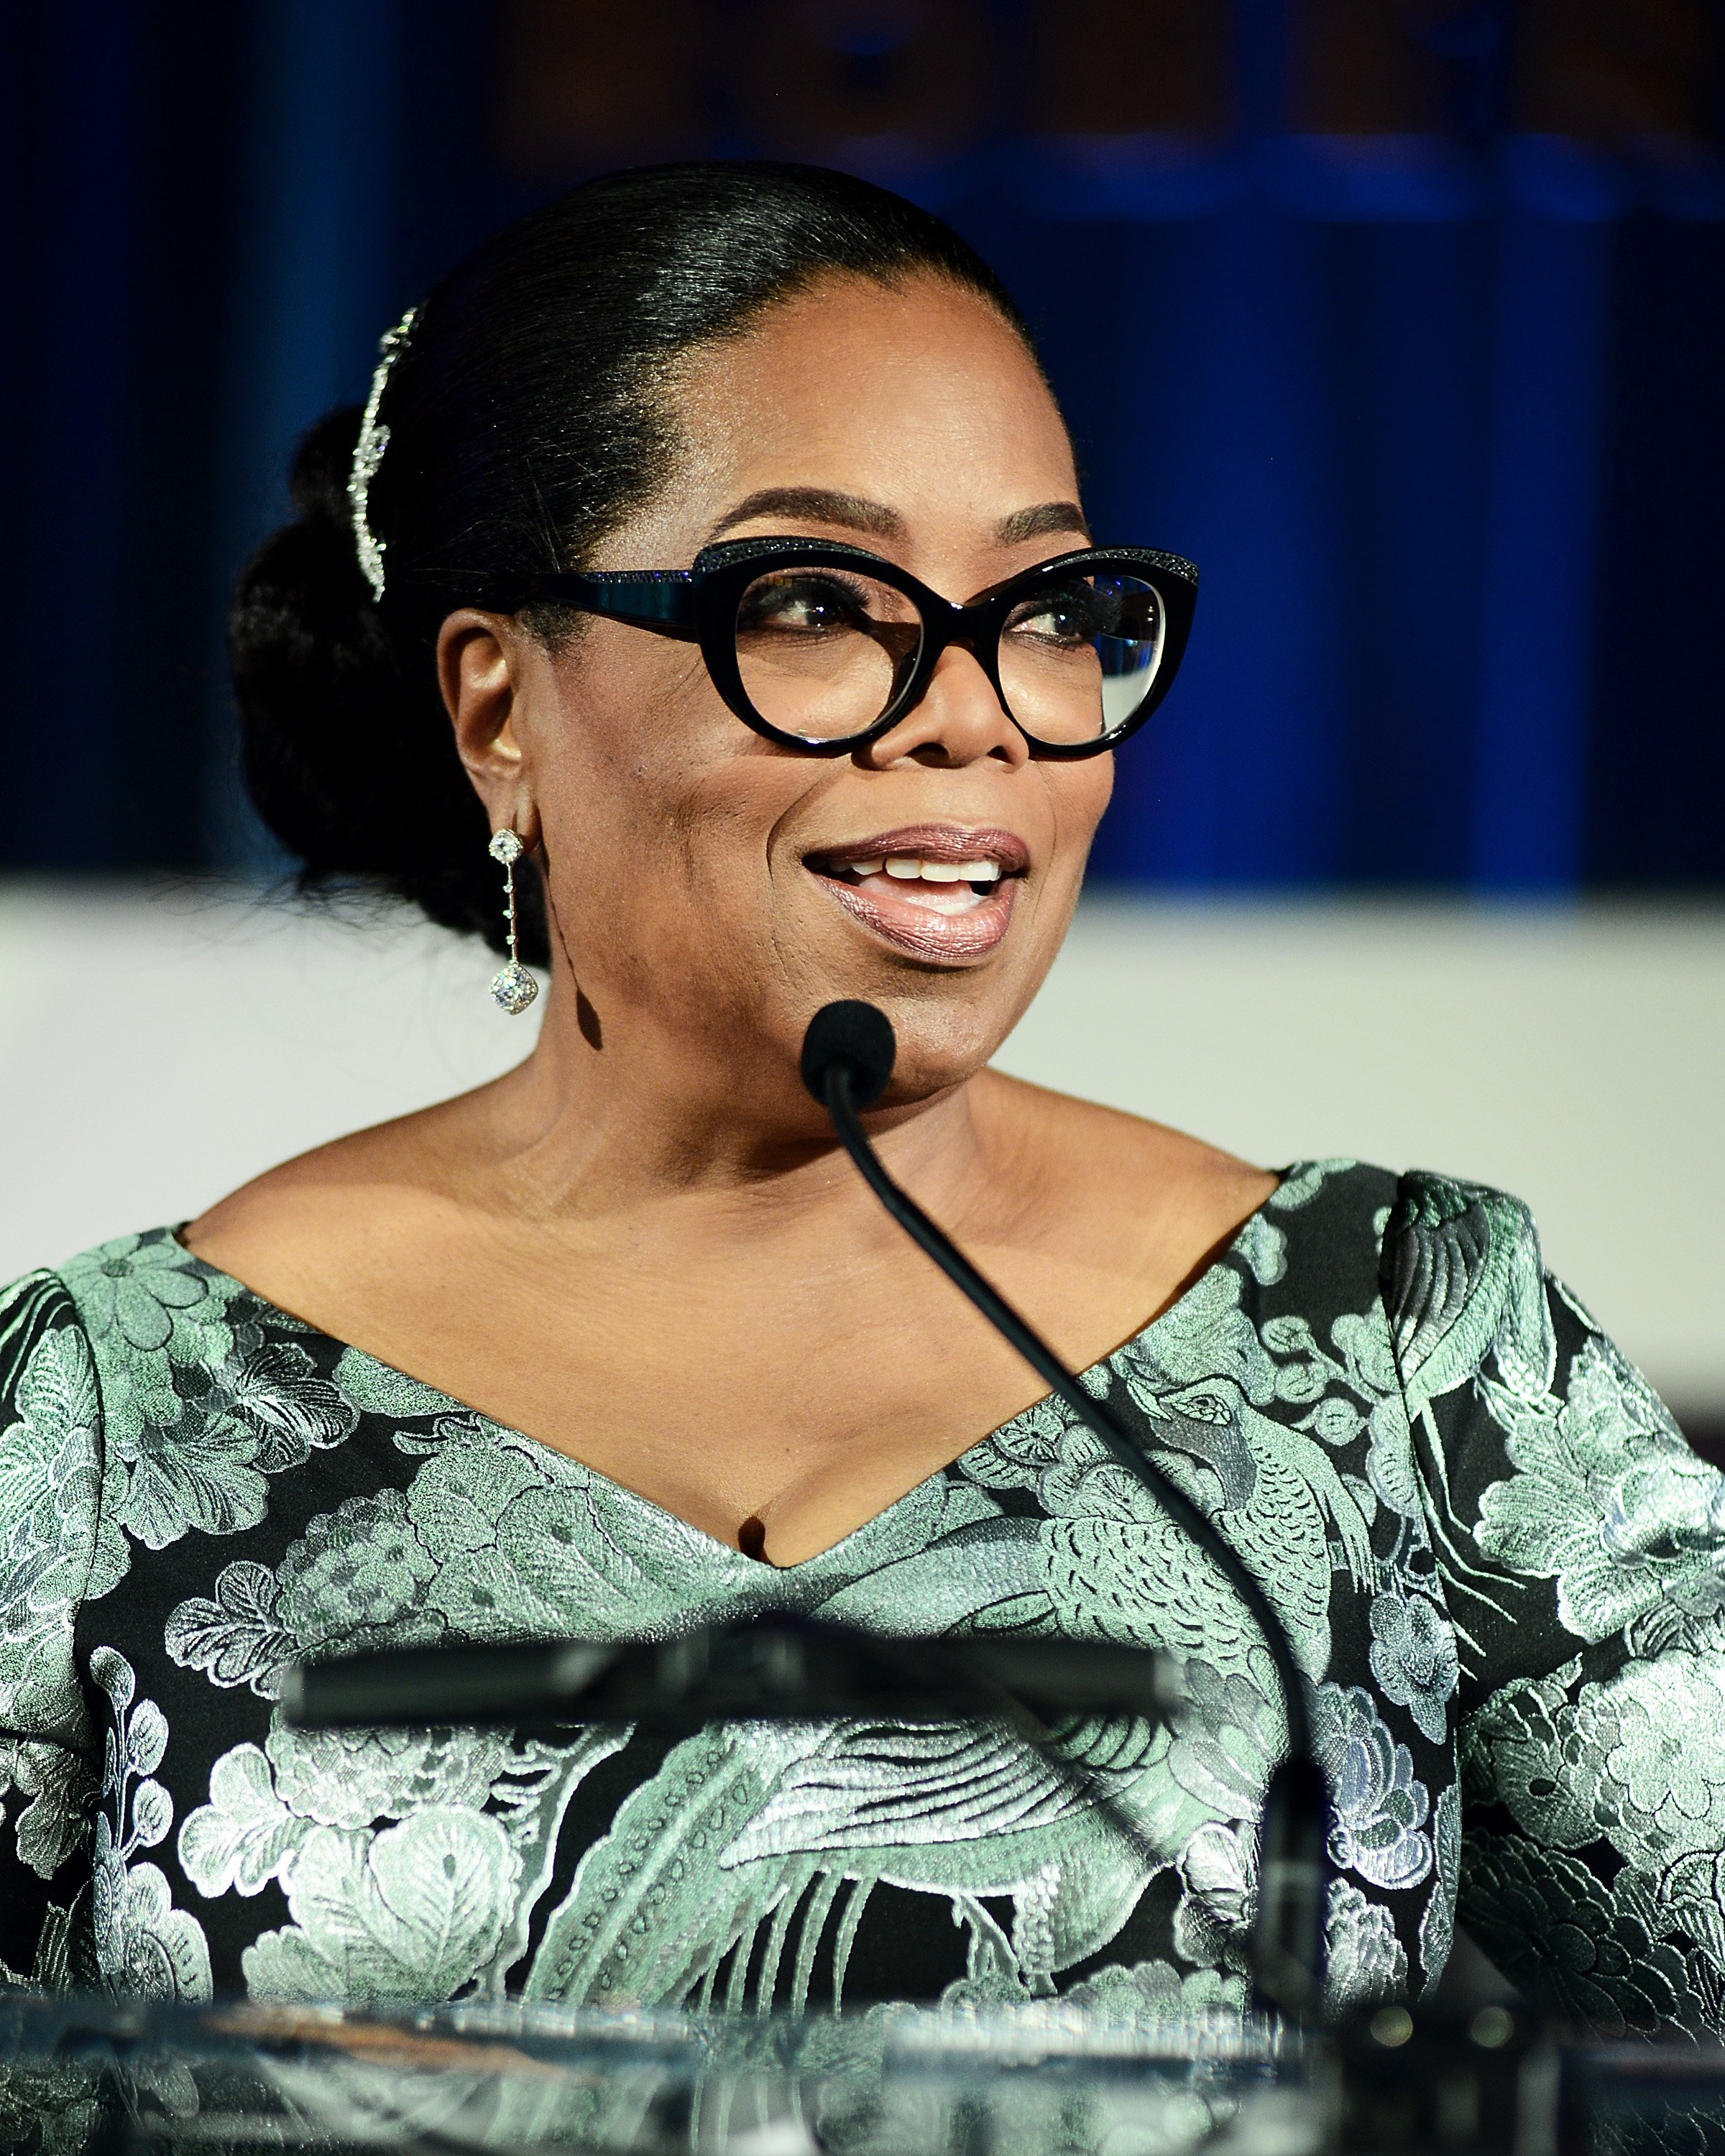 """Oprah Winfrey at the """"Watching Oprah: The Oprah Winfrey Show And American Culture"""" Opening Reception on June 7, 2018 in Washington, DC   Photo: Getty Images"""